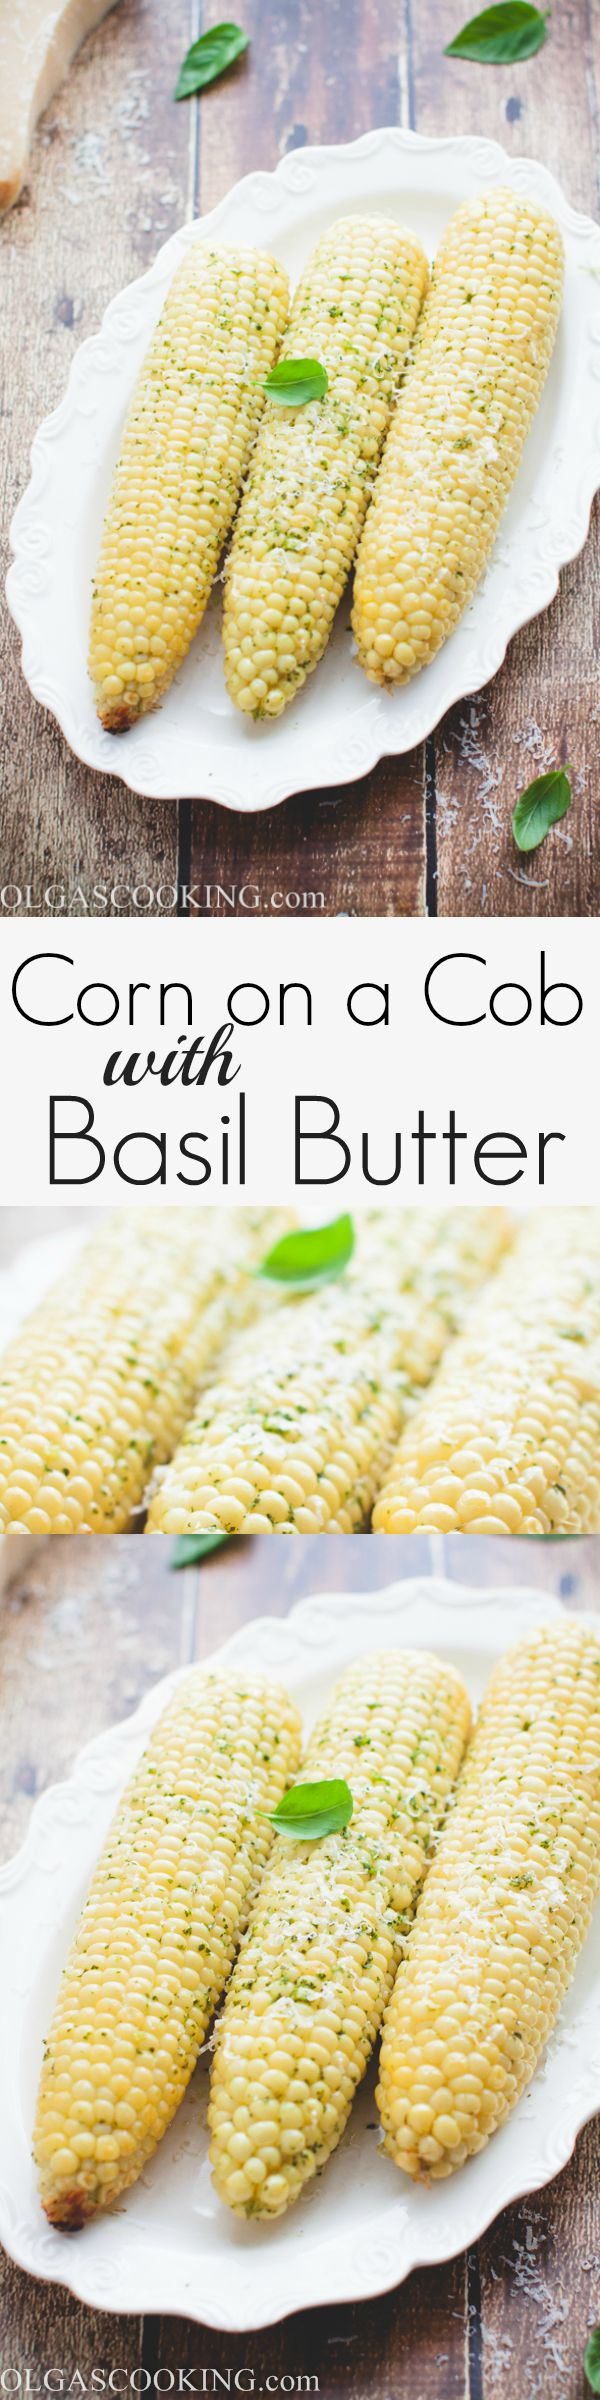 15 minute corn on a cob with basil butter